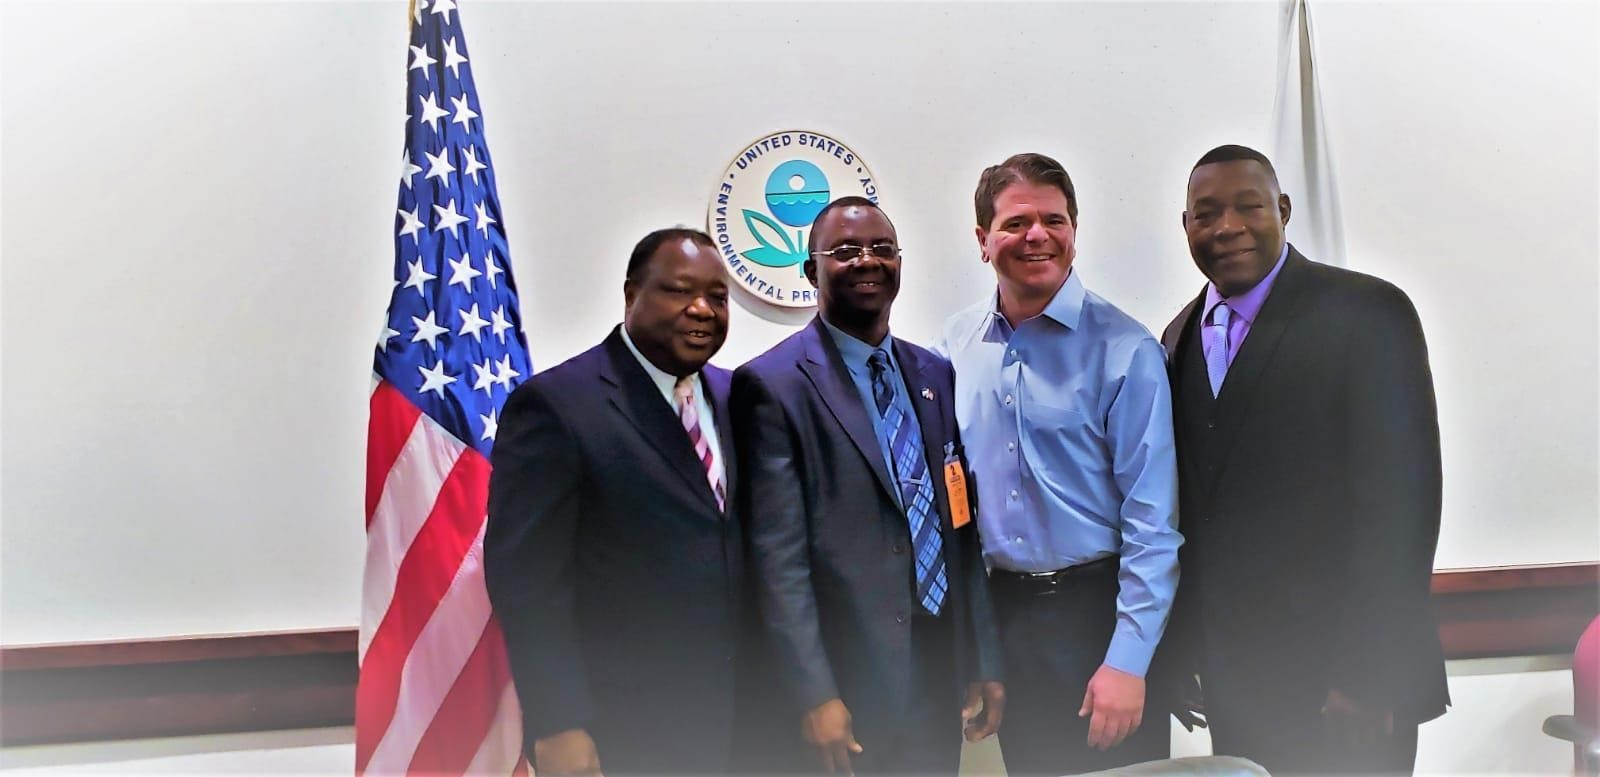 Executive Chairman of the Environment Protection Agency – Sierra Leone, Dr. Foday Moriba Jaward (center left), posing with officials of the Environment Protection Agency – USA